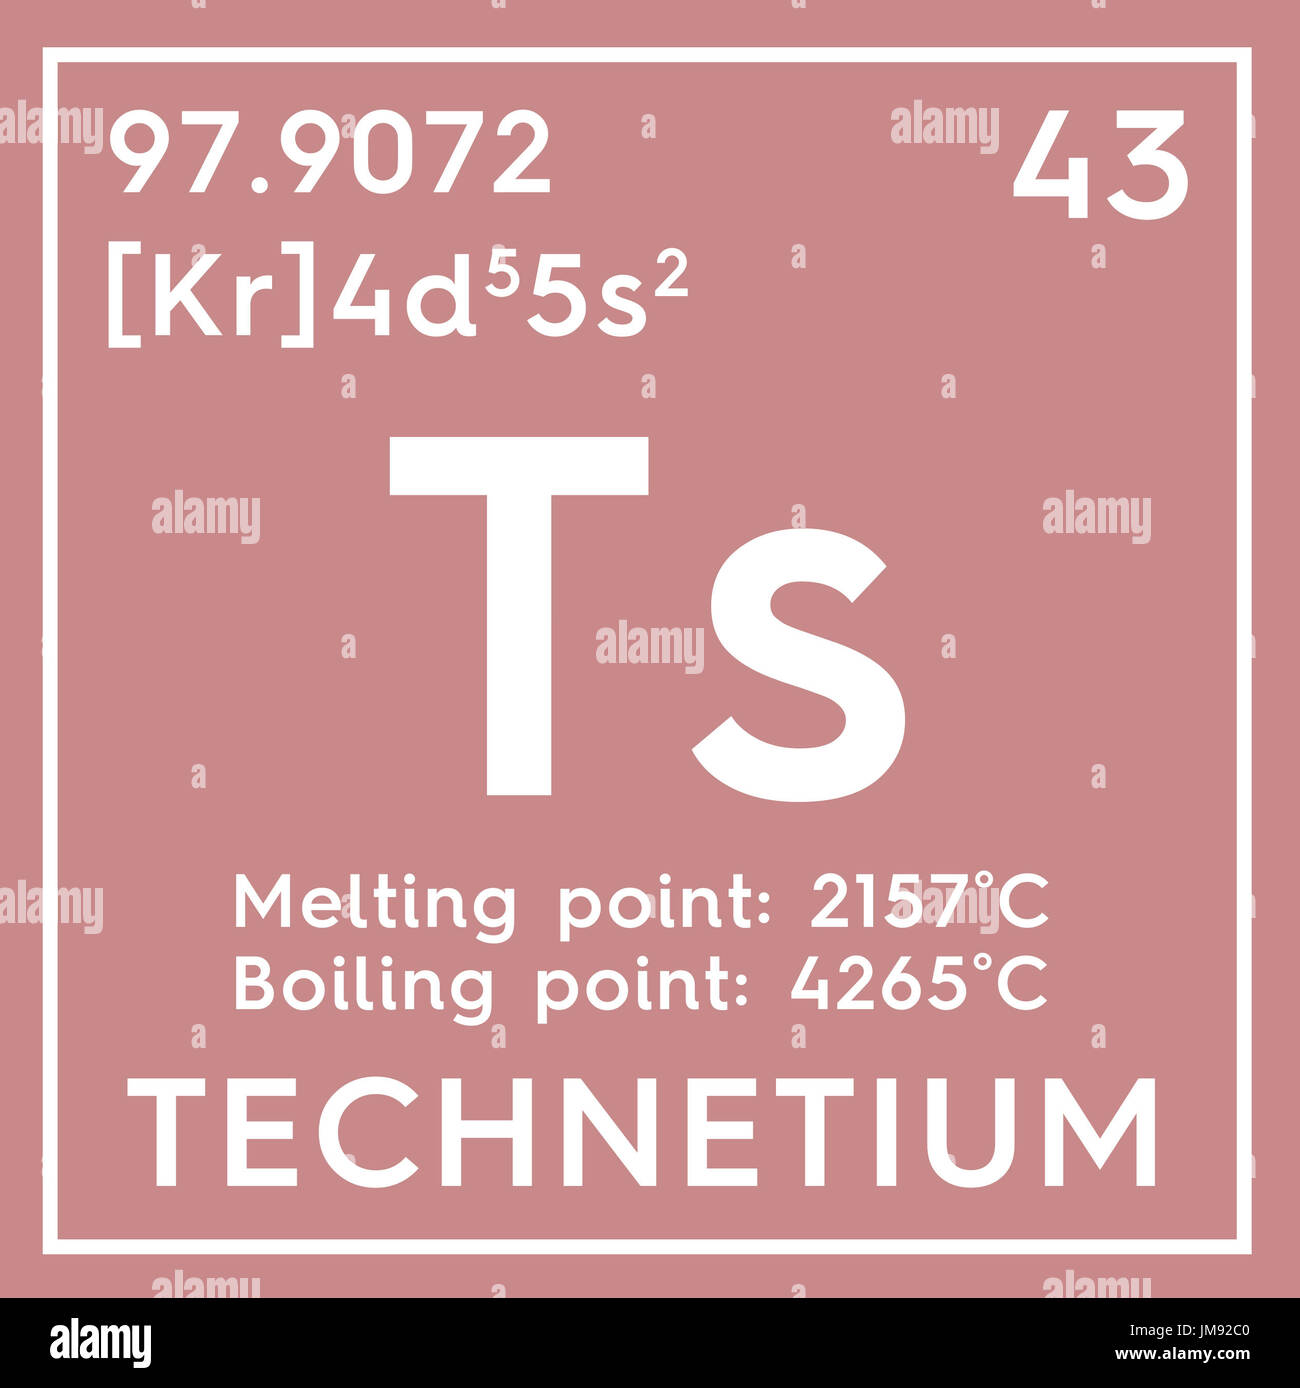 Technetium transition metals chemical element of mendeleevs stock photo technetium transition metals chemical element of mendeleevs periodic table technetium in square cube creative concept gamestrikefo Images